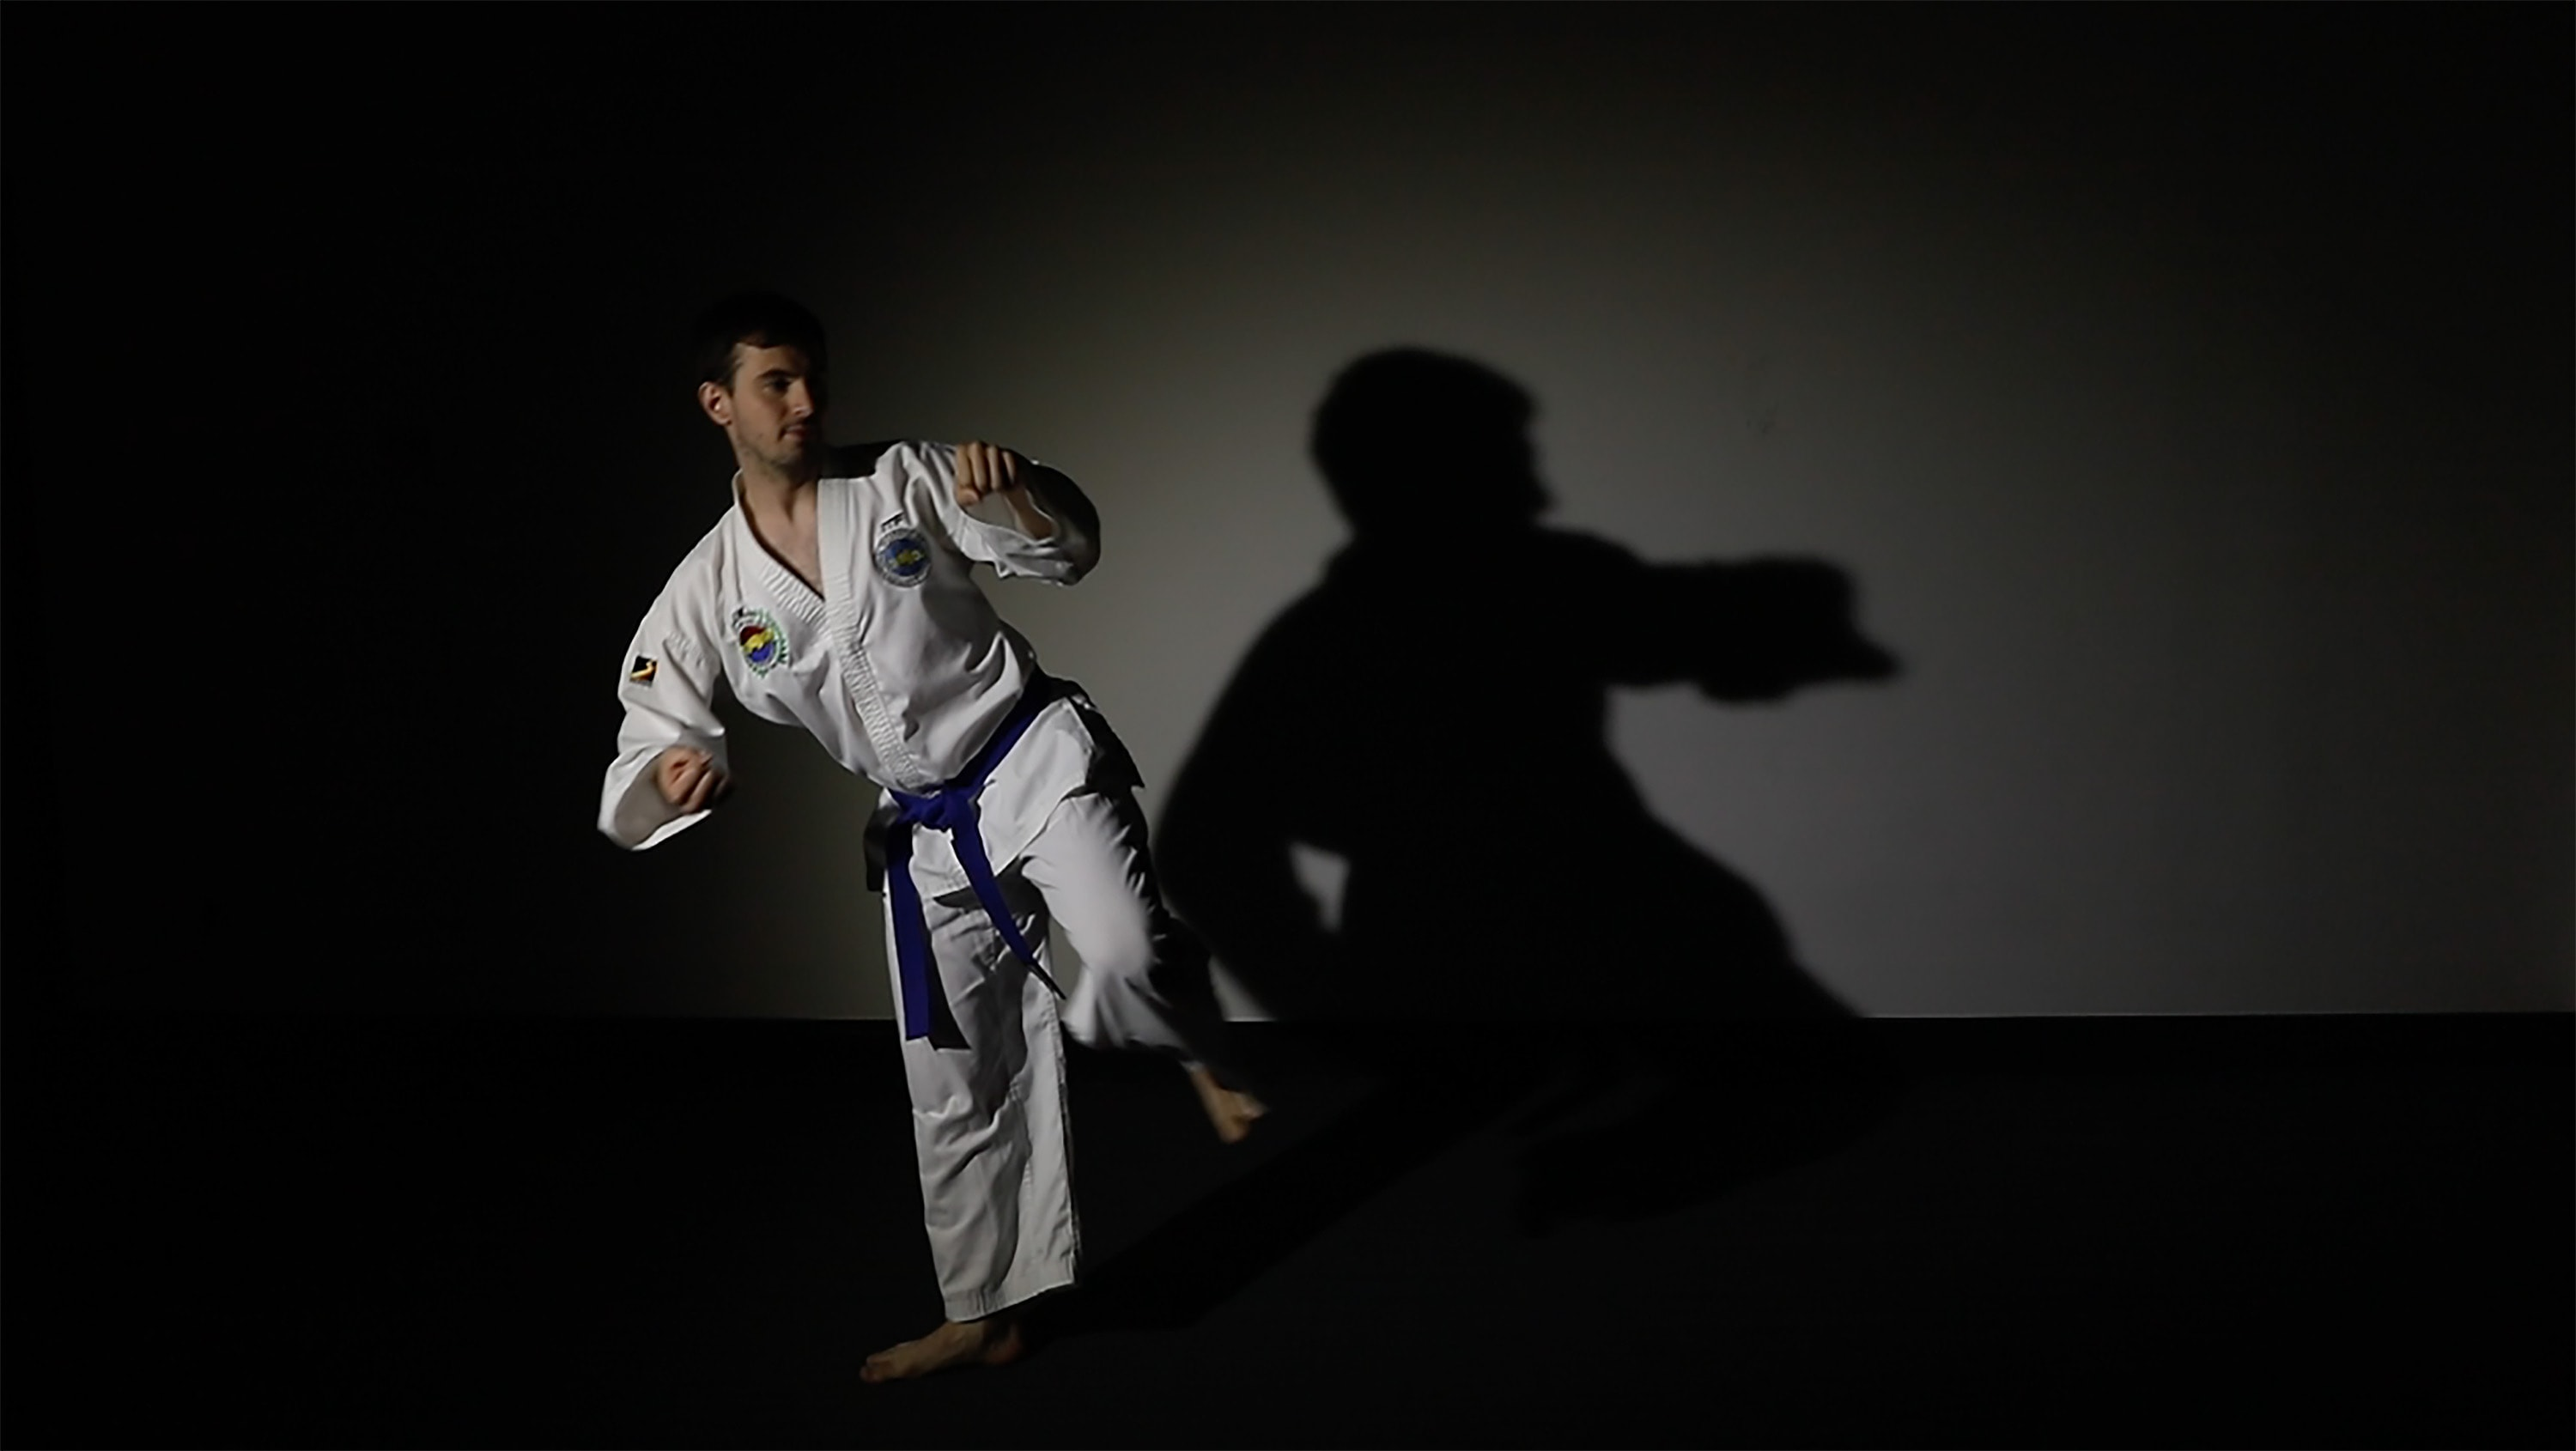 Martial arts motion of a man in a standing position lifting their left leg